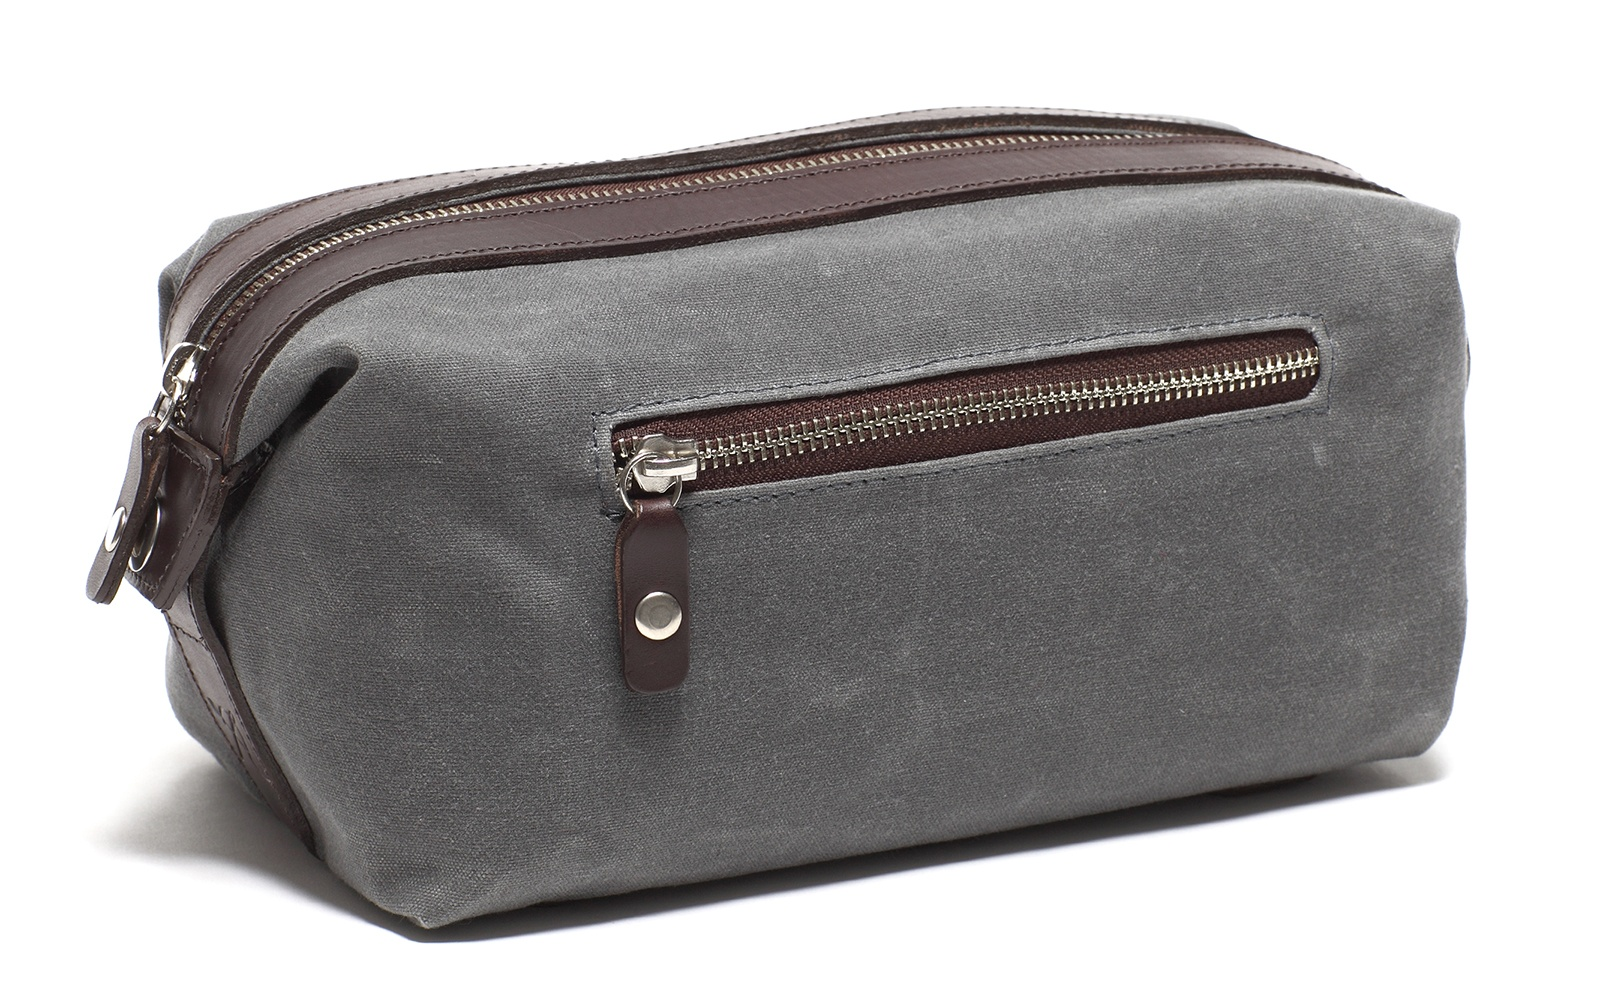 Holden Navy Dopp Kit